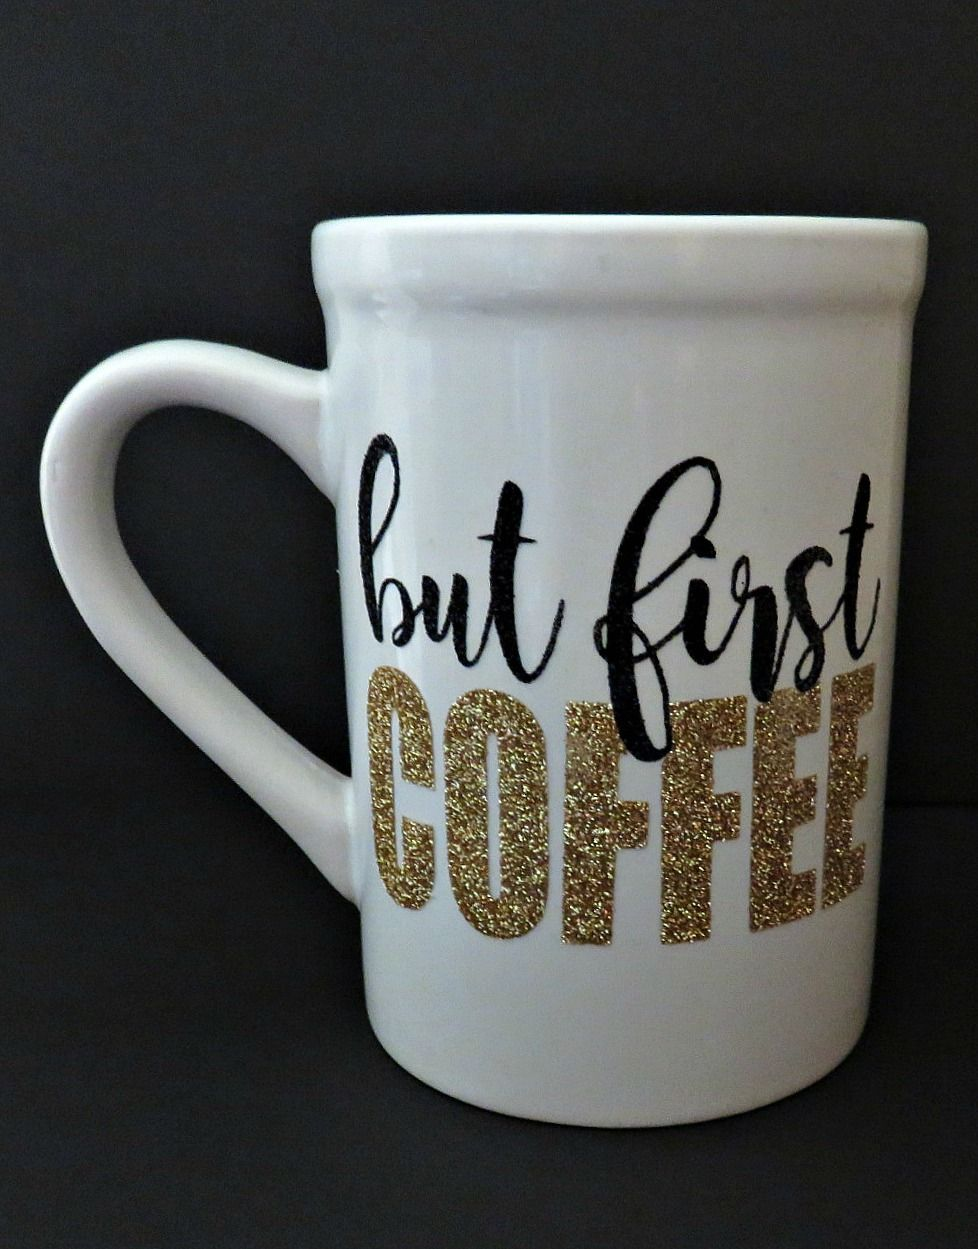 Winsome Silhouette Cameo Silhouette School Coffee Mug Made Glitter Heat Transfer Vinyl Dishwasher Safe Coffee Mug By Mypaper Craze Glittler Heat